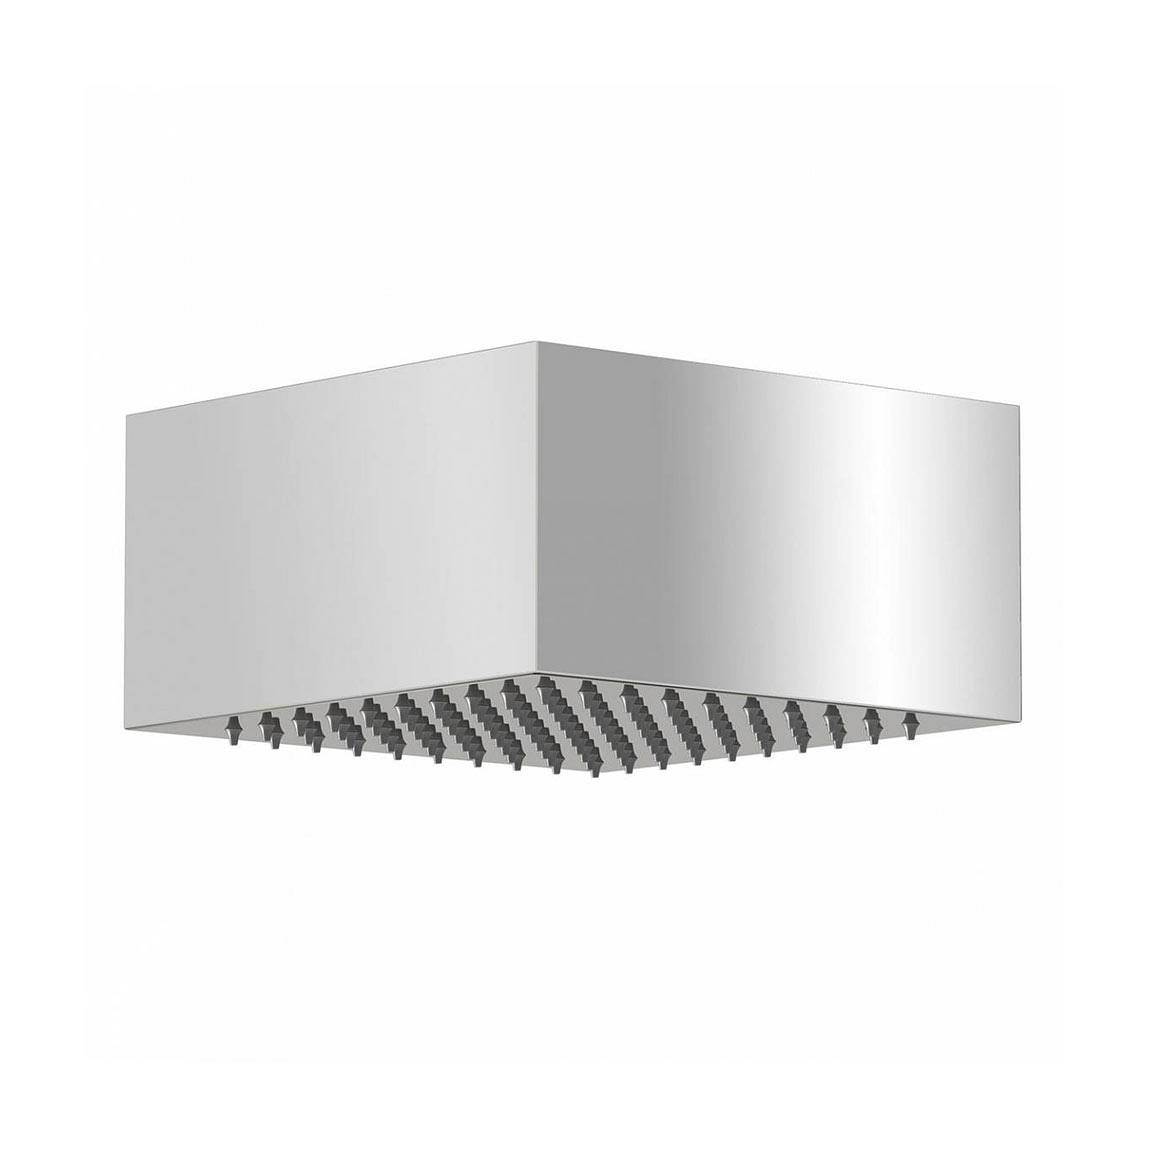 Image of Arcus Ceiling 200mm Shower Head Small